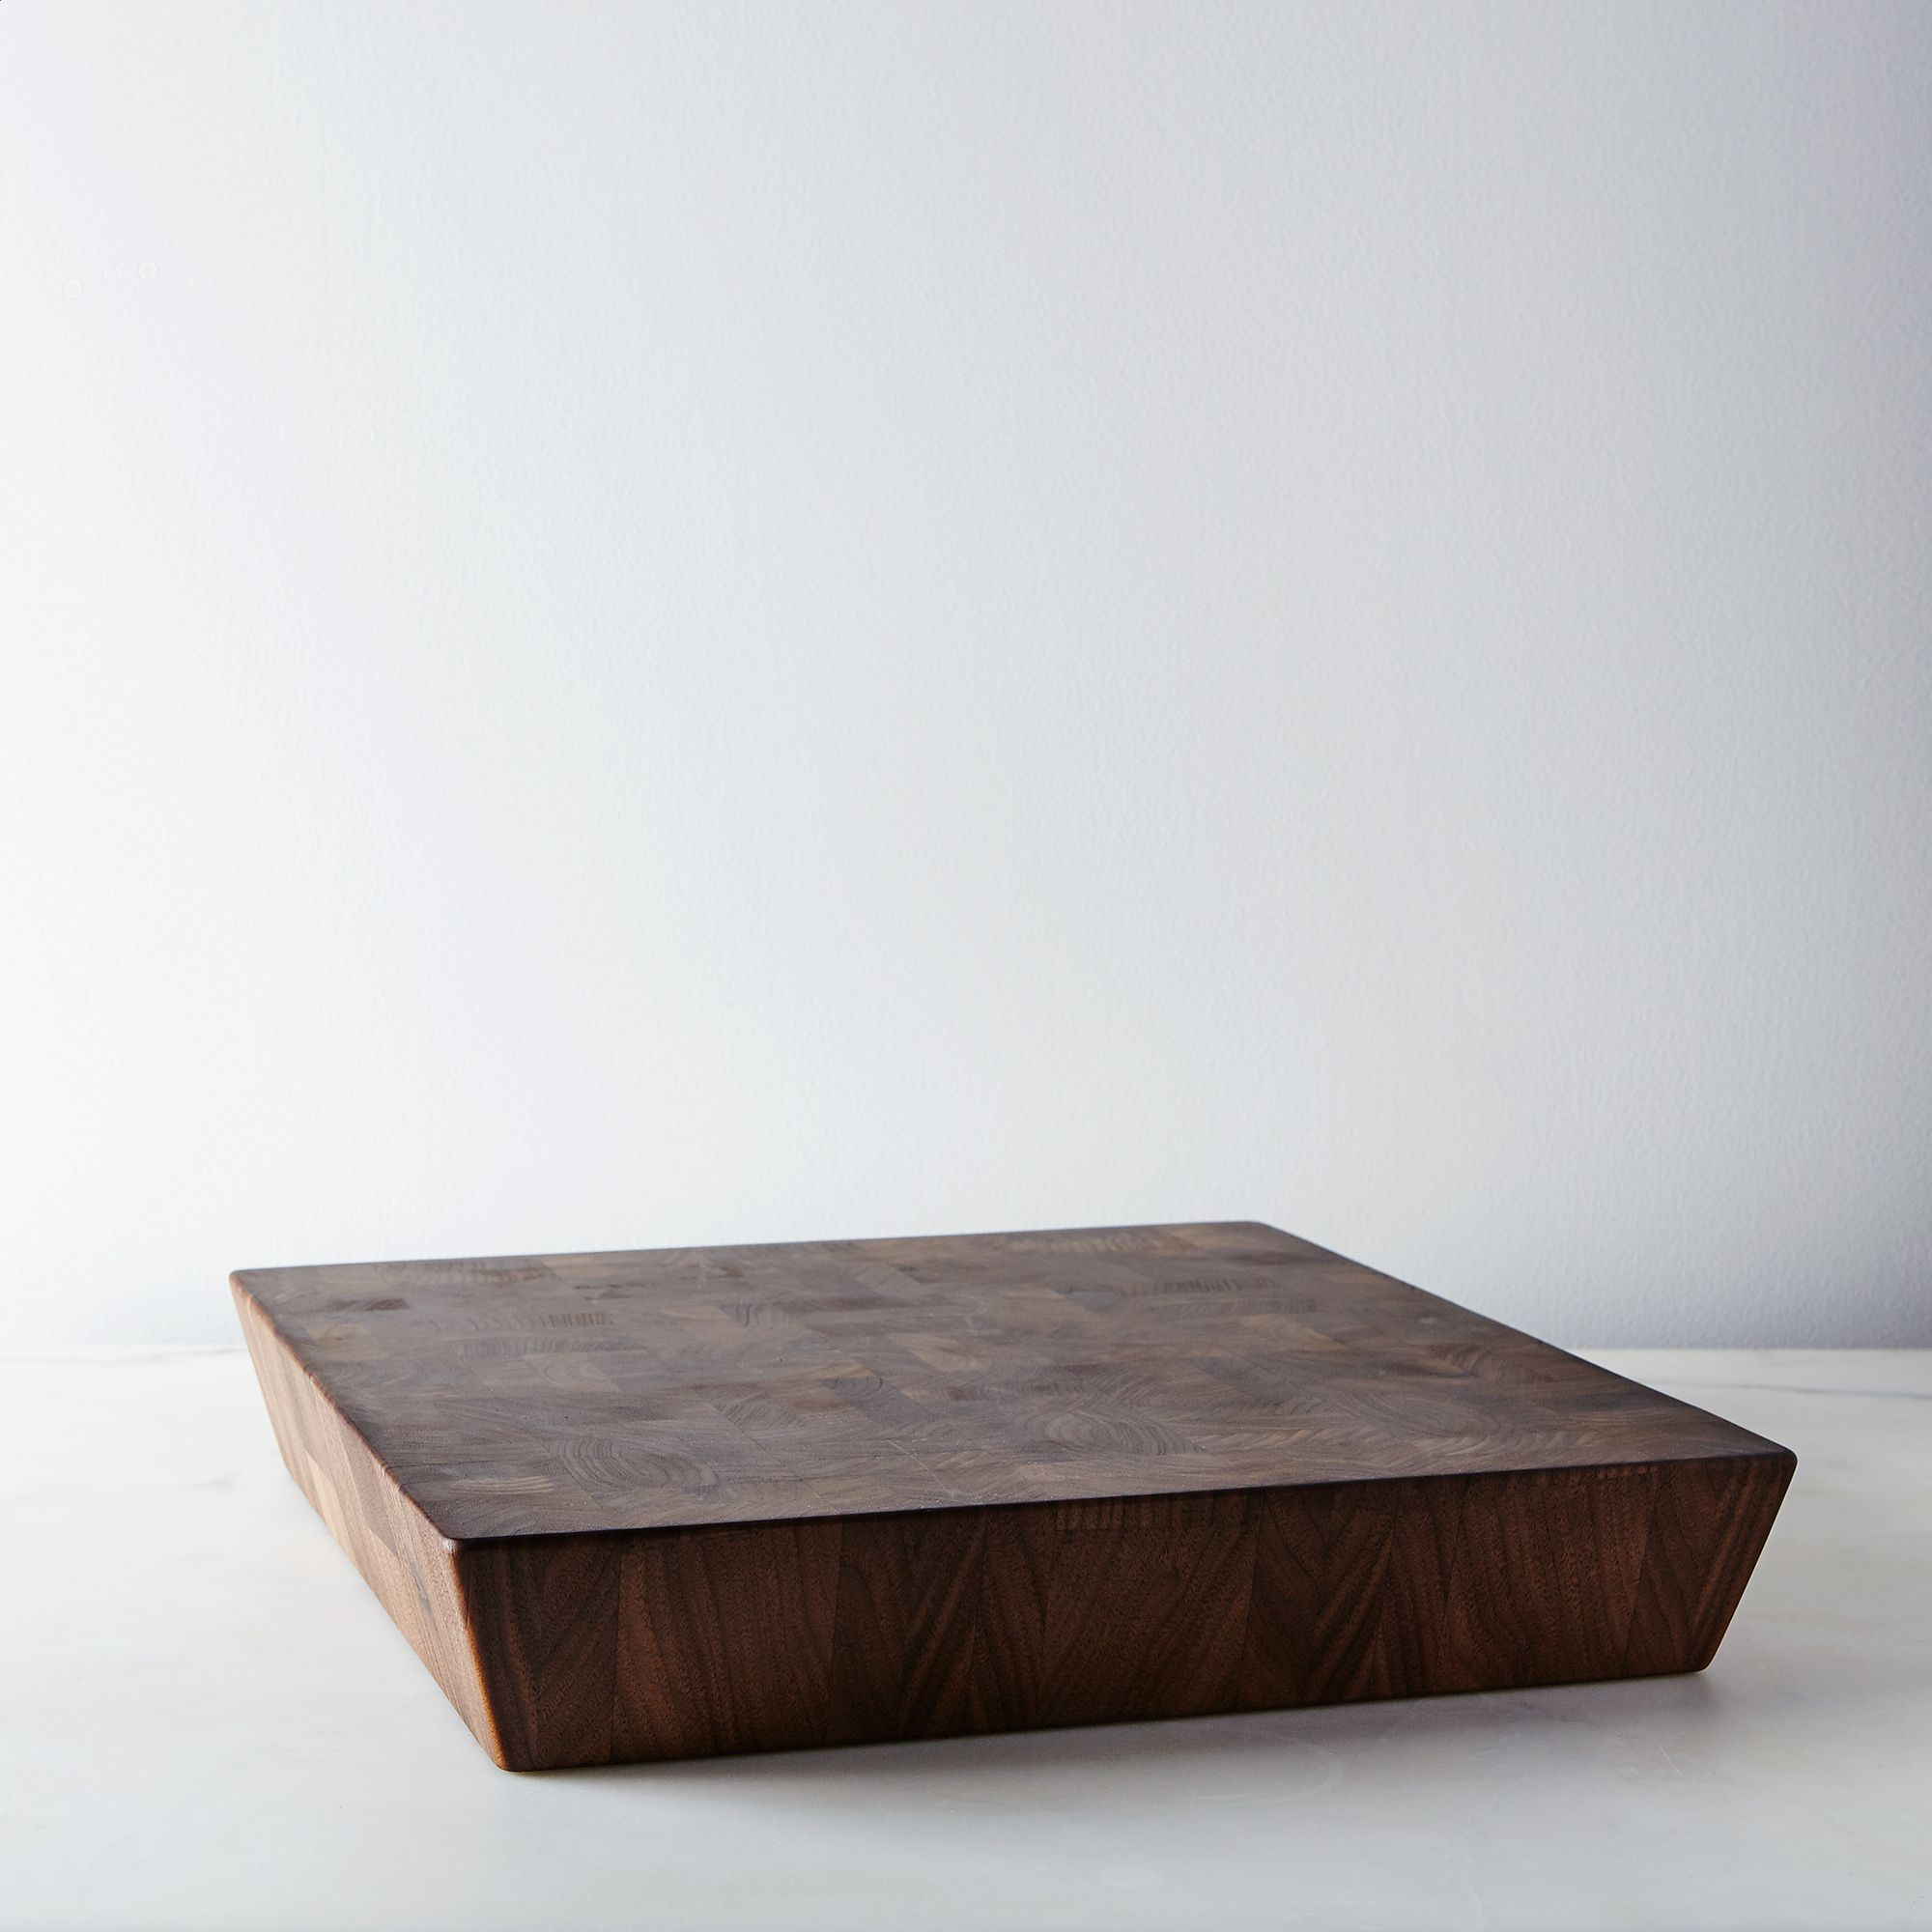 F21052bf 94d6 4aee 987b 653269805254  2015 0528 garde shop black walnut chopping board 14 inch silo bobbi lin 0010